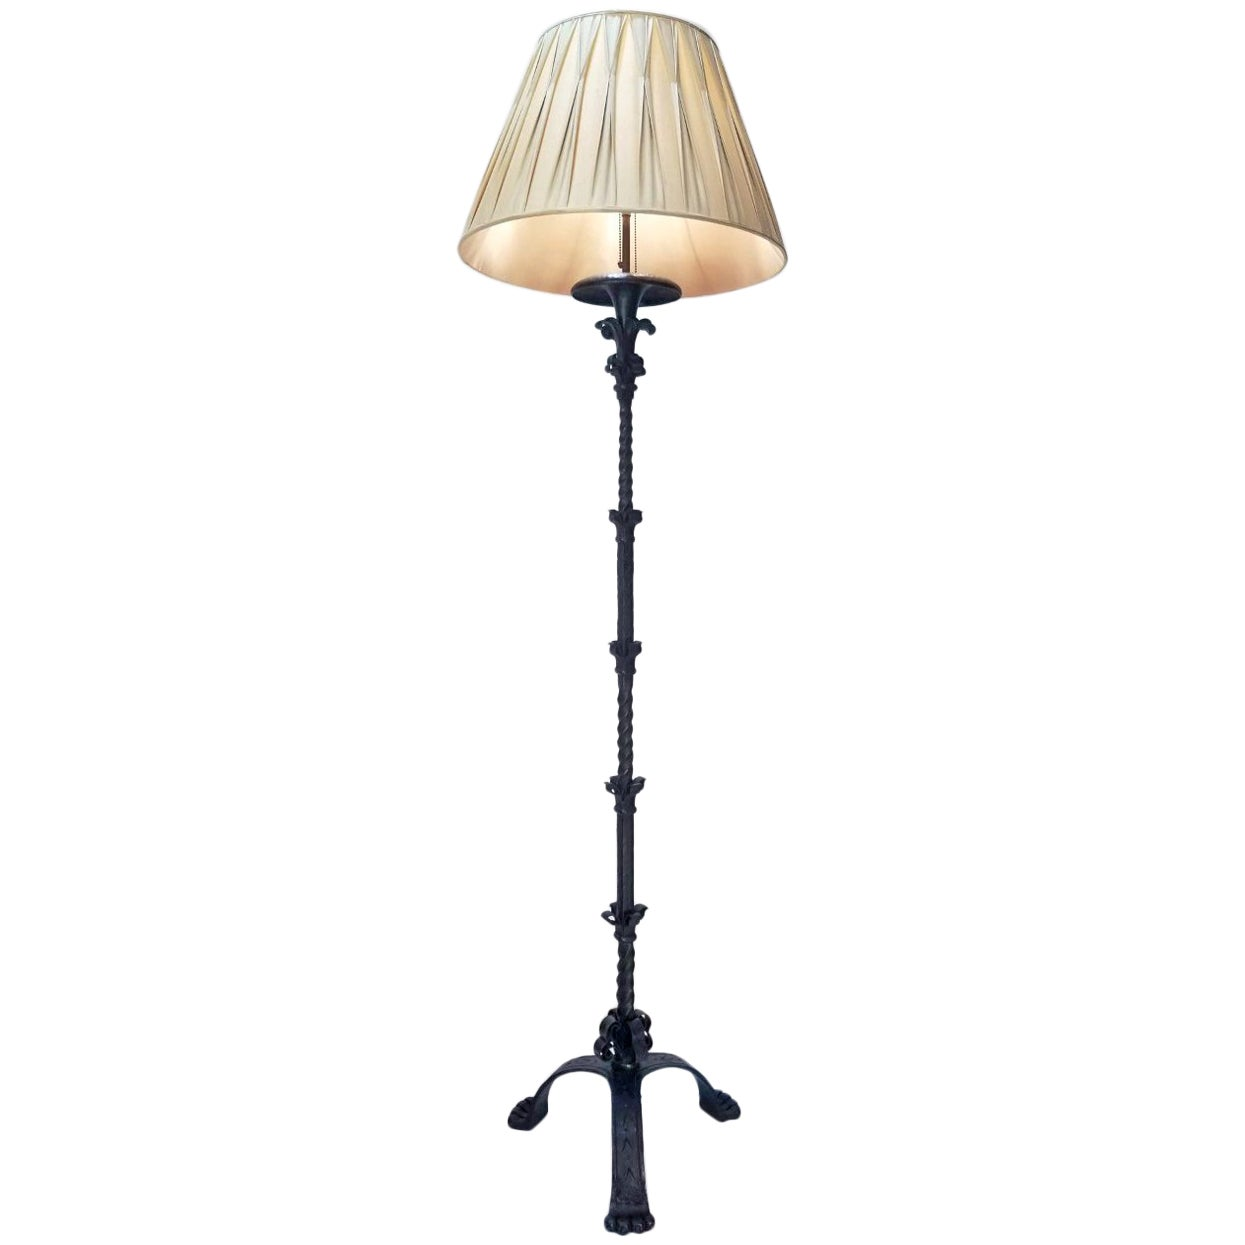 Early 20th Century Caldwell Wrought Iron Floor Lamp